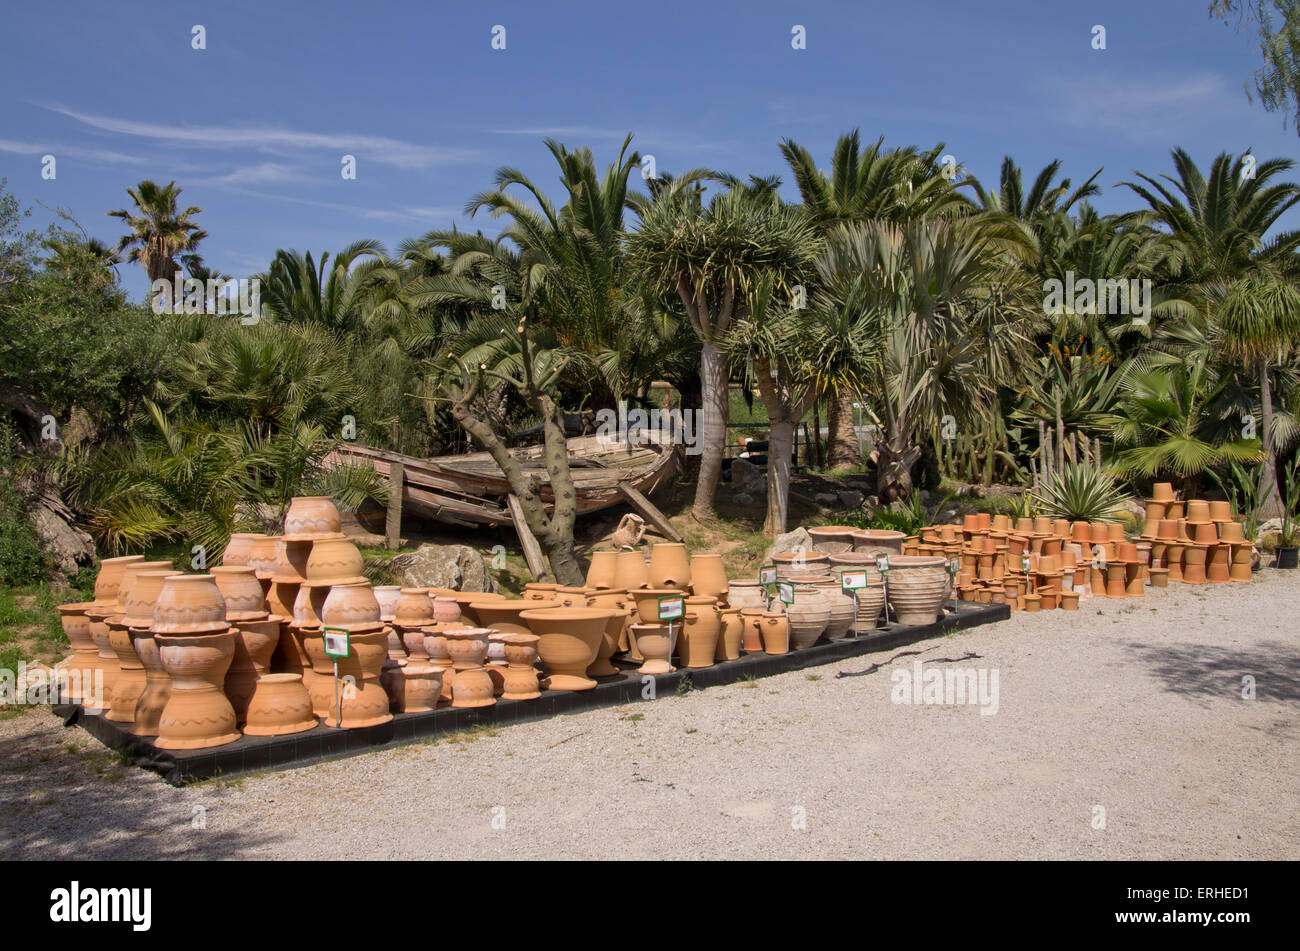 Garden Pots For Sale Part - 45: Stock Photo - Terracotta Pots On Sale In A Garden Centre In Majorca